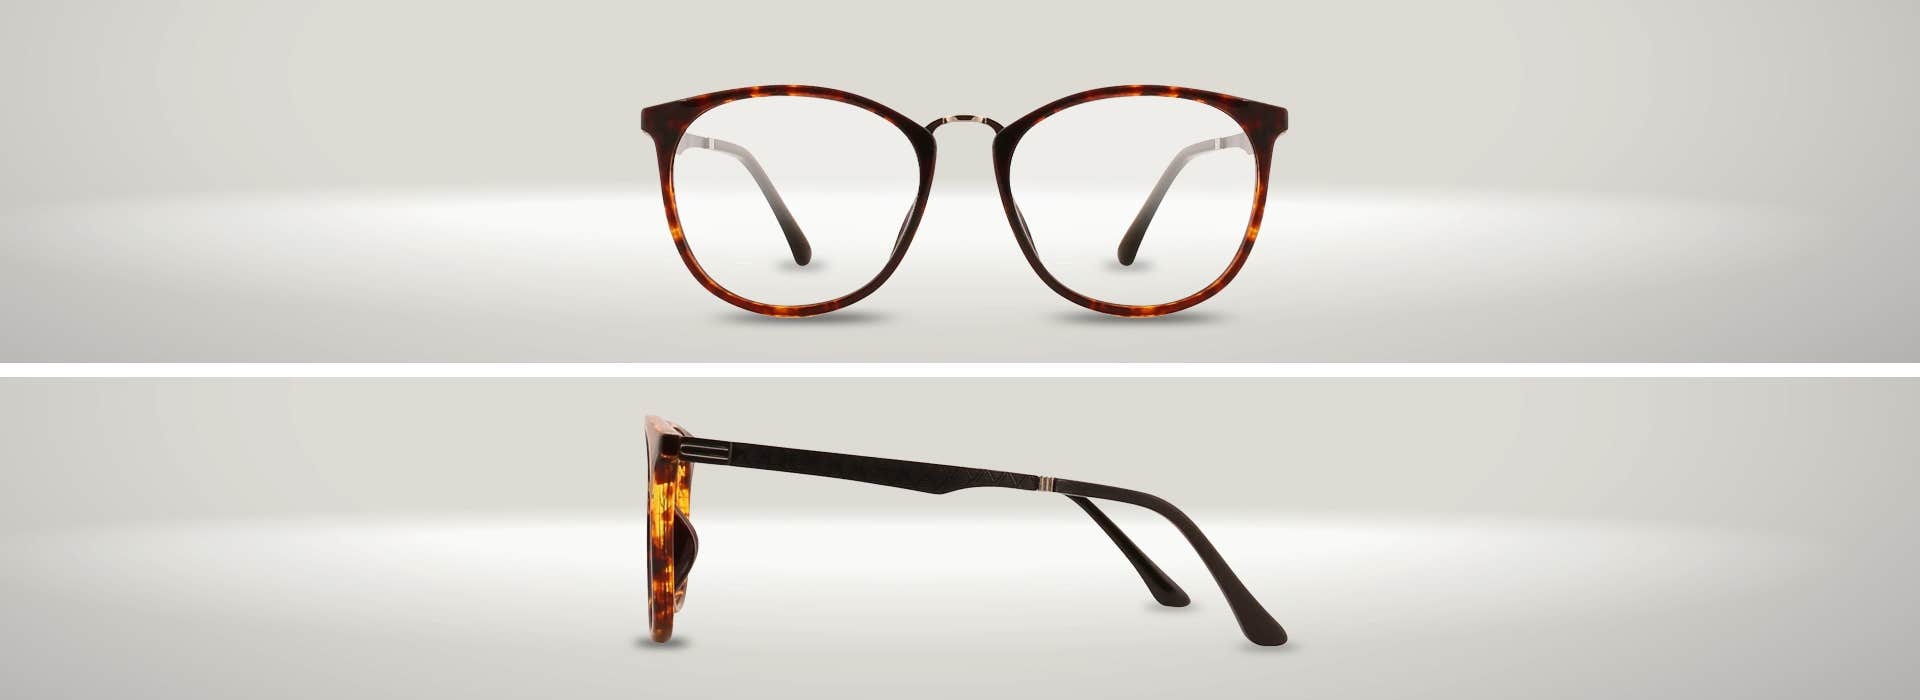 The 126637-C ROUND EYEGLASSES